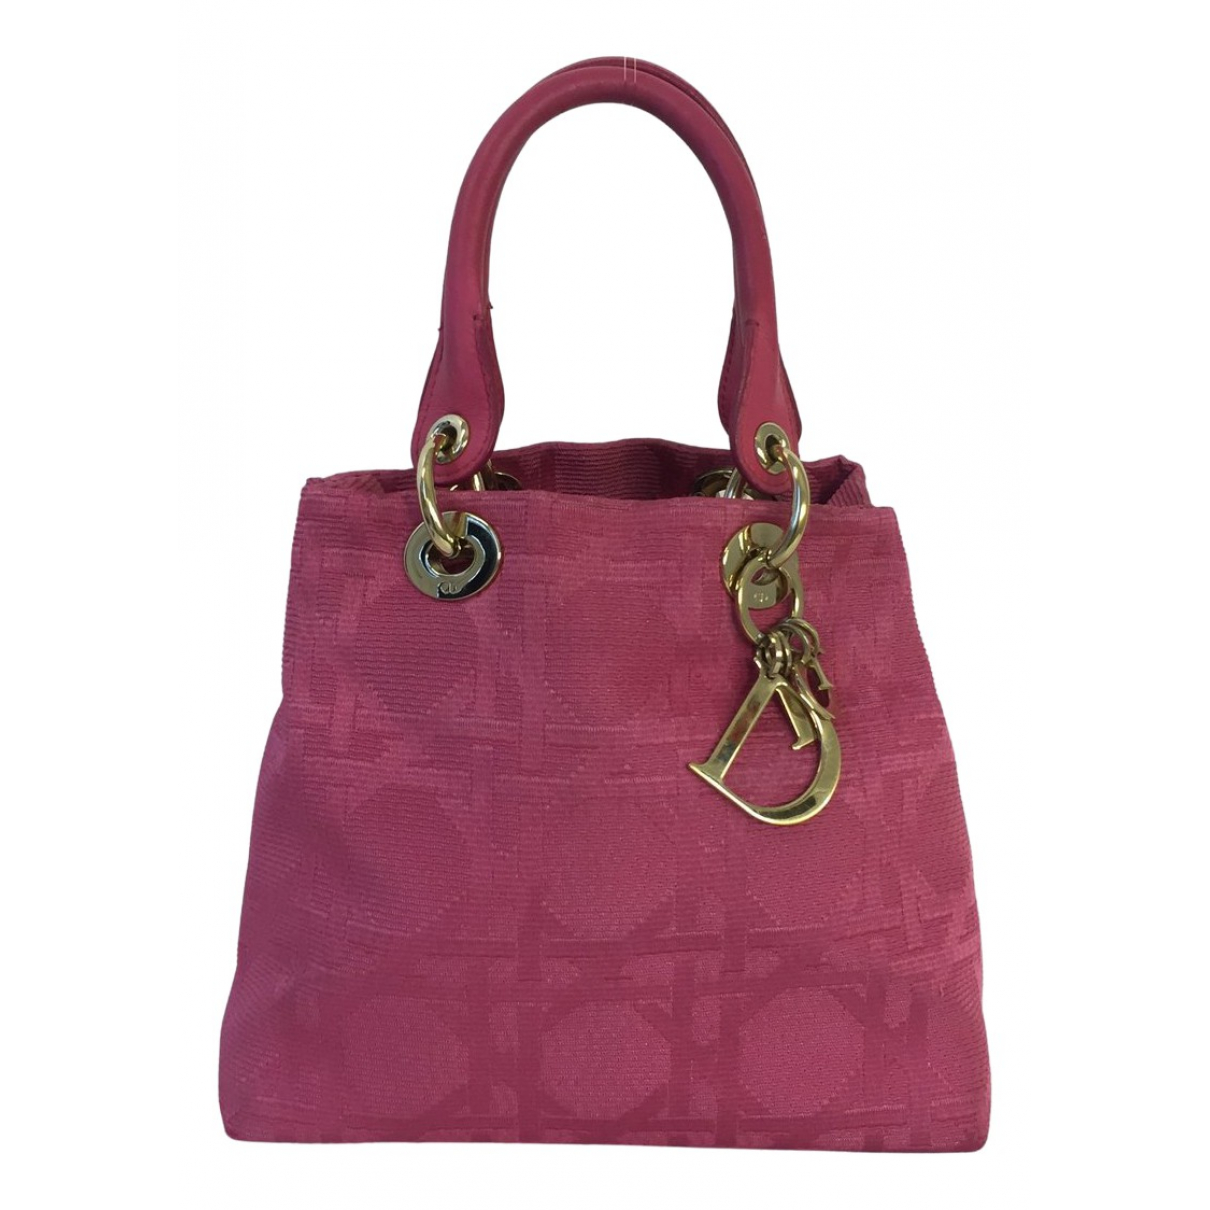 Dior N Pink Cloth handbag for Women N